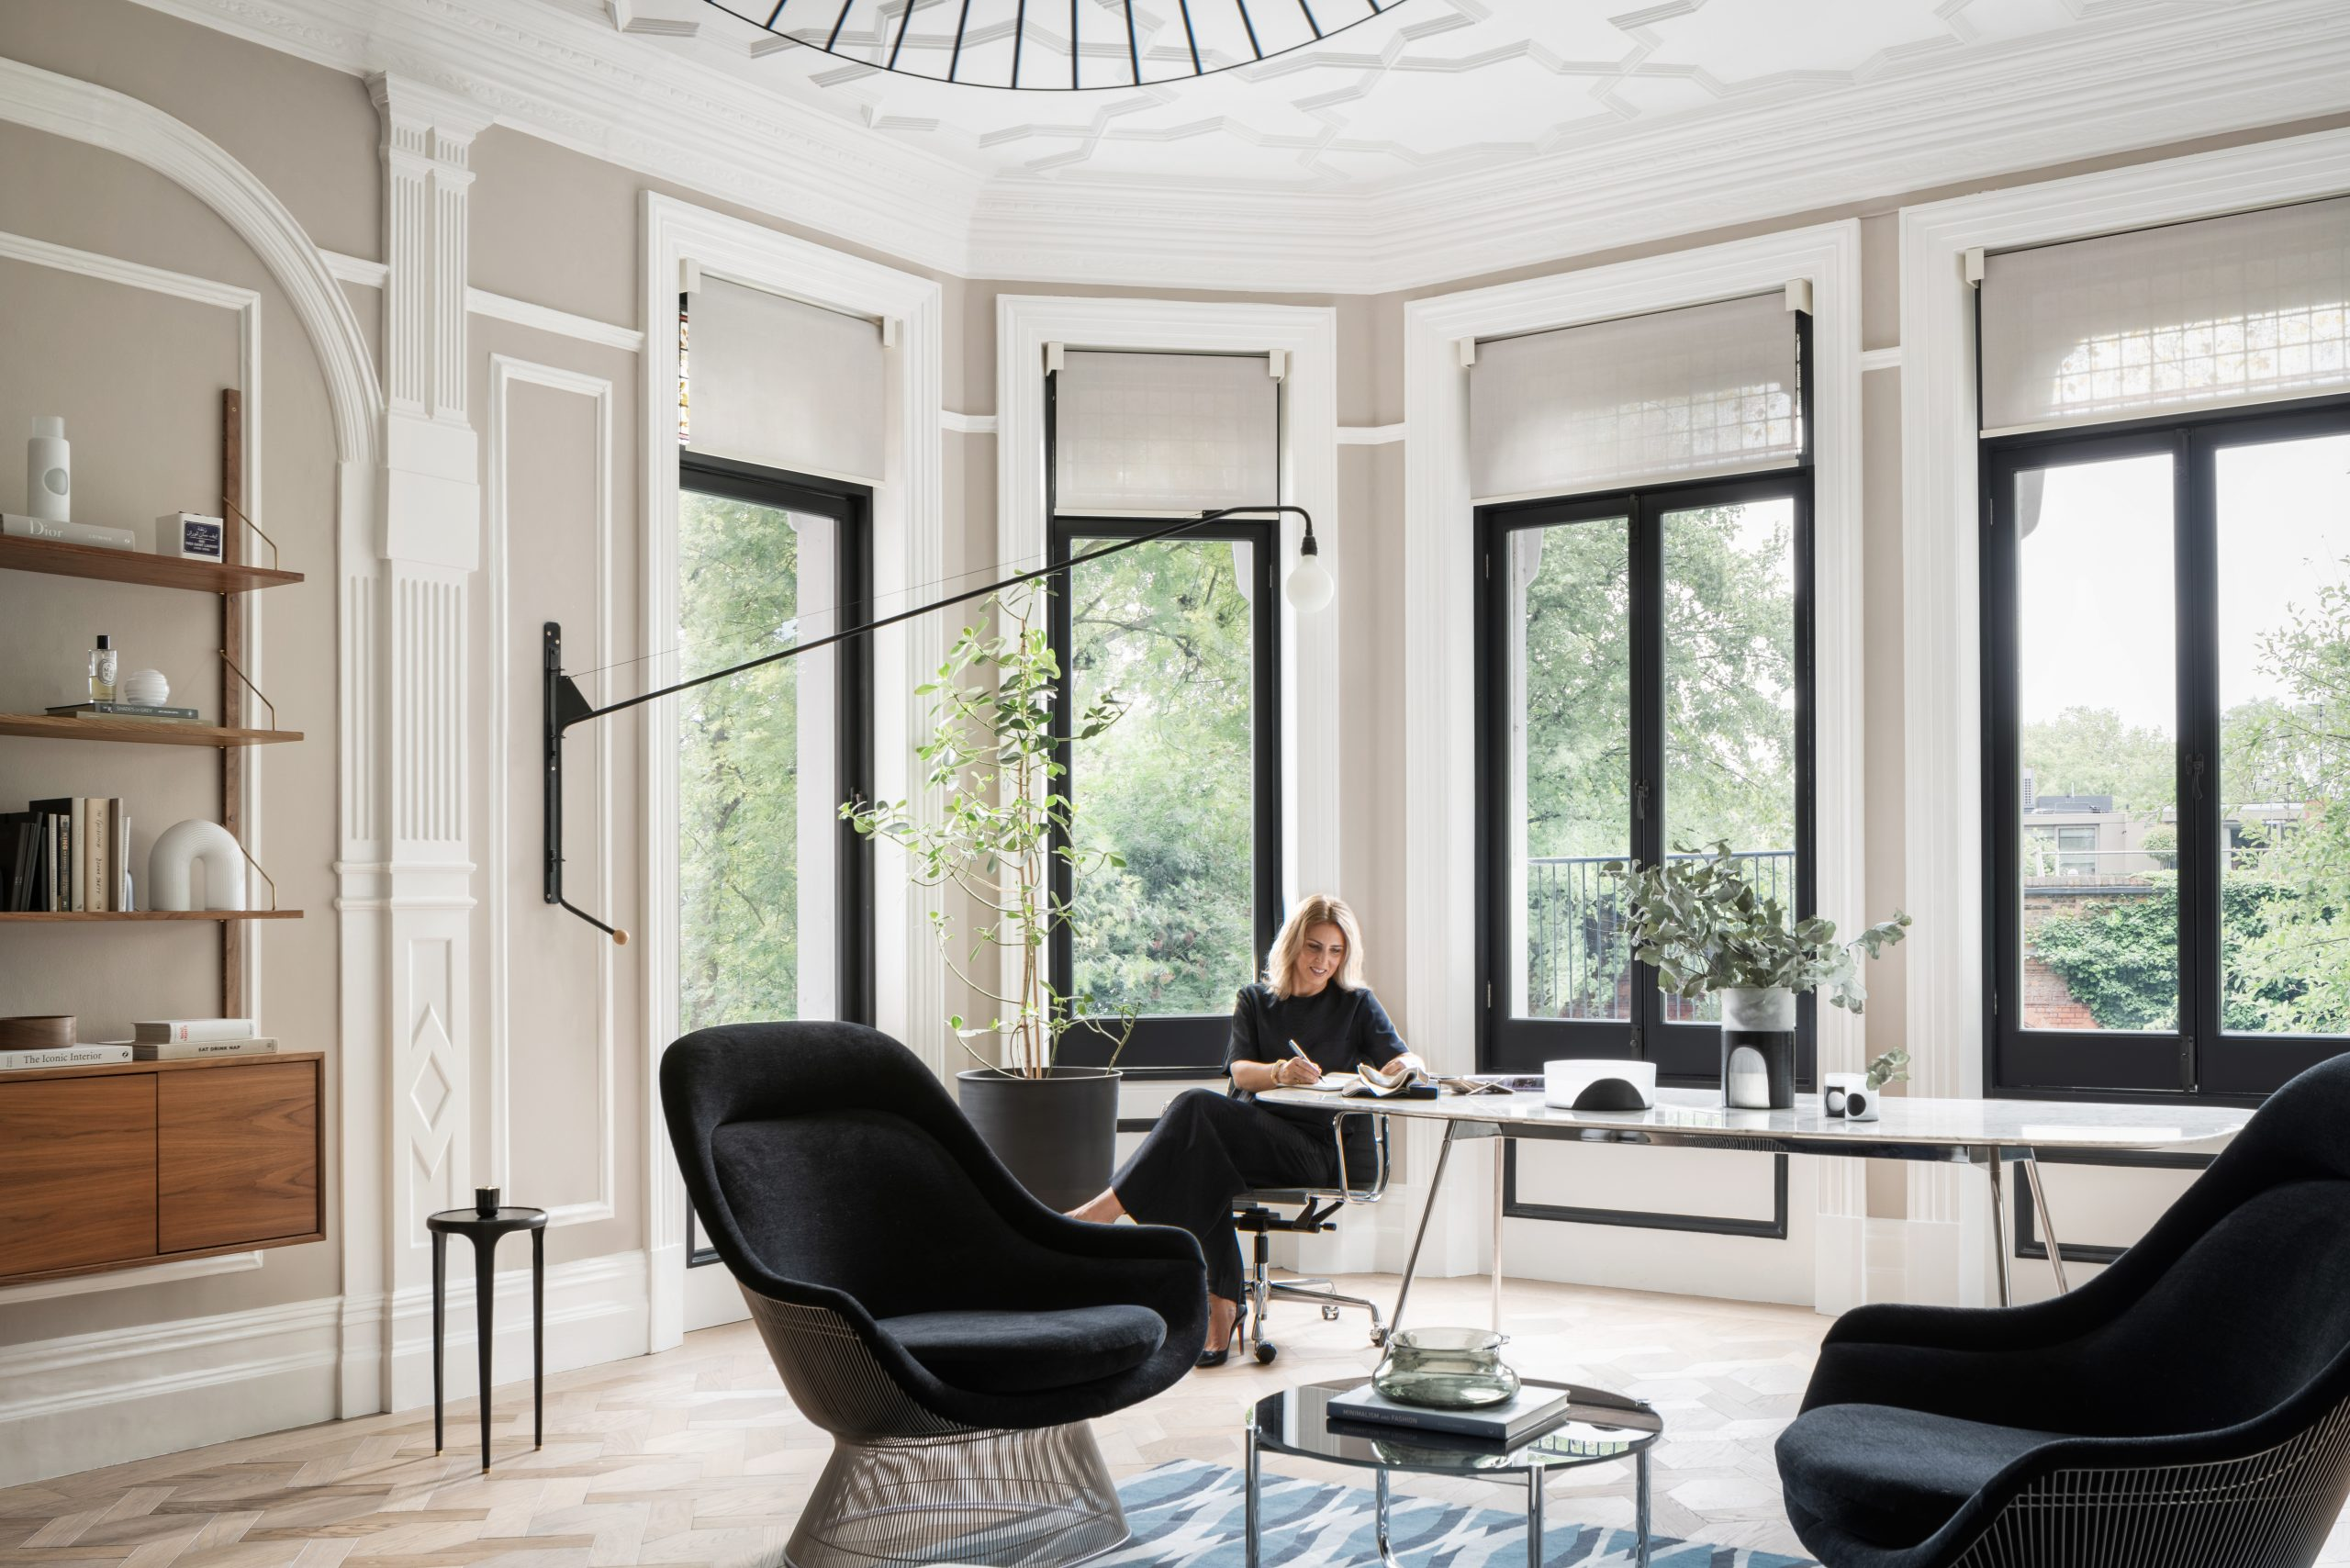 Interior Designer in North London - Belsize Park, Hampstead, Primrose Hill and Camden. Click to view the interior design portfolio and our interior show rooms from NW3 Interiors.